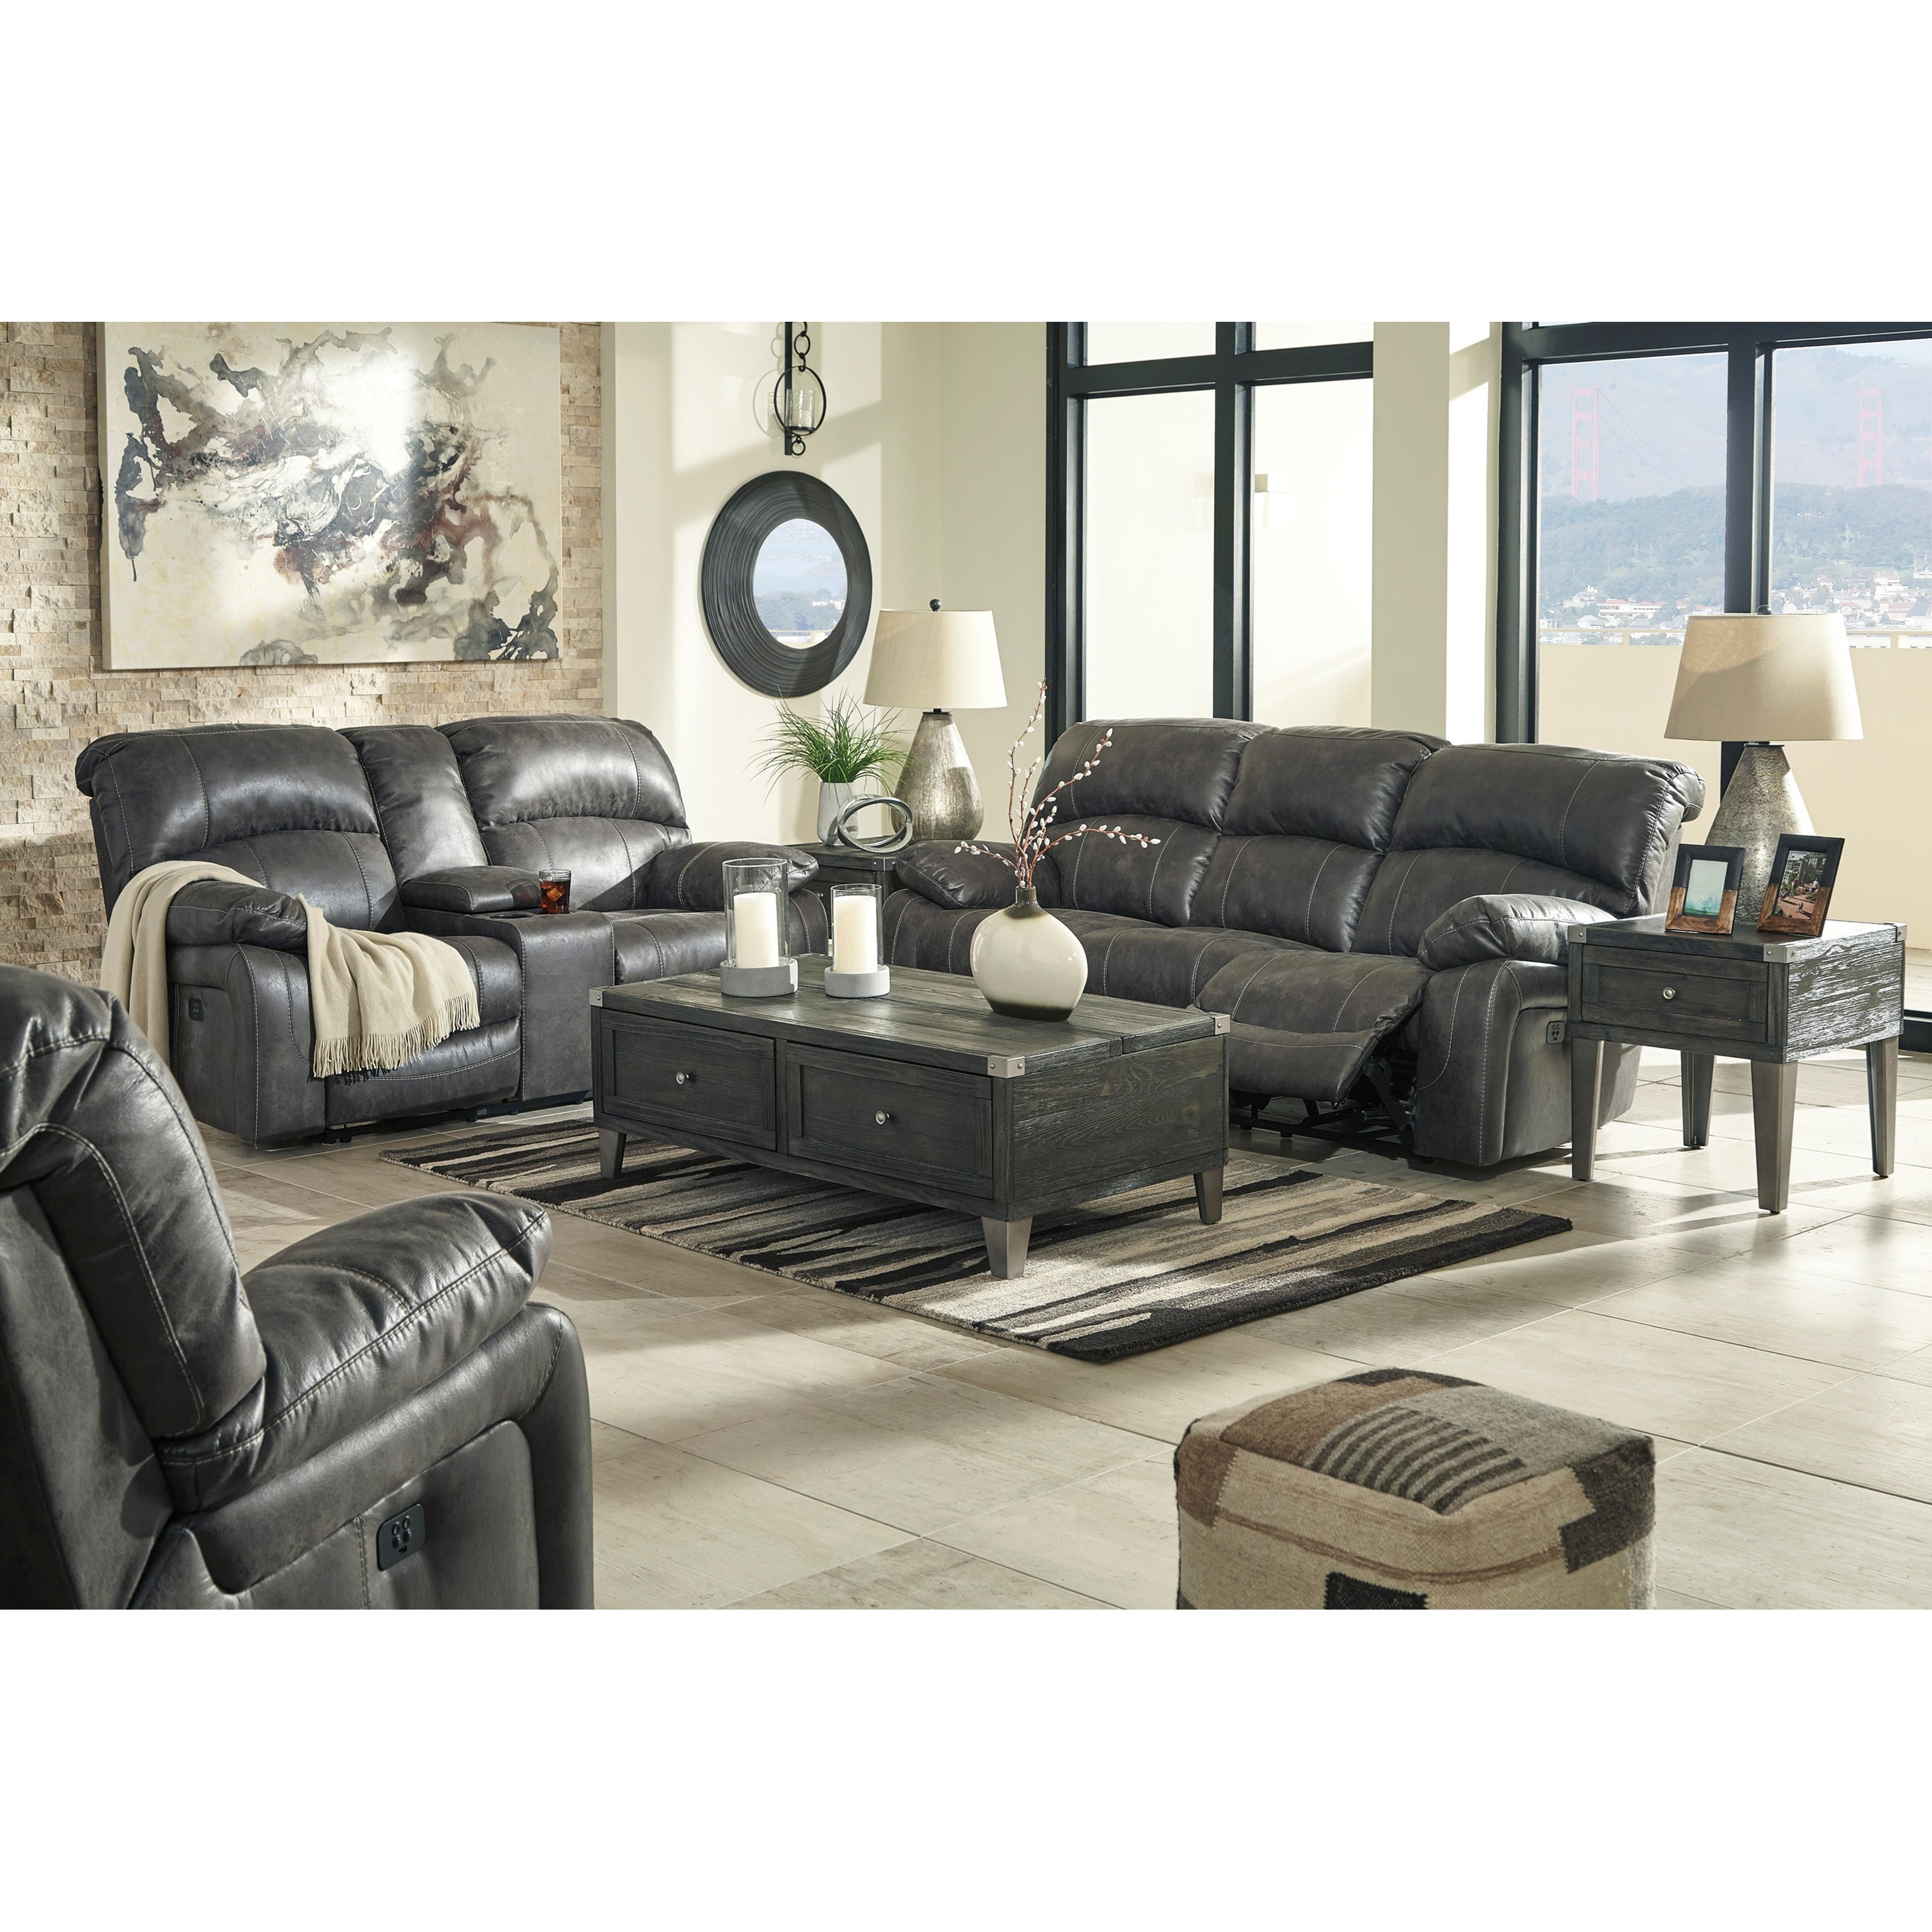 Ashley Furniture Sales Ad: Signature Design By Ashley Dunwell Reclining Living Room